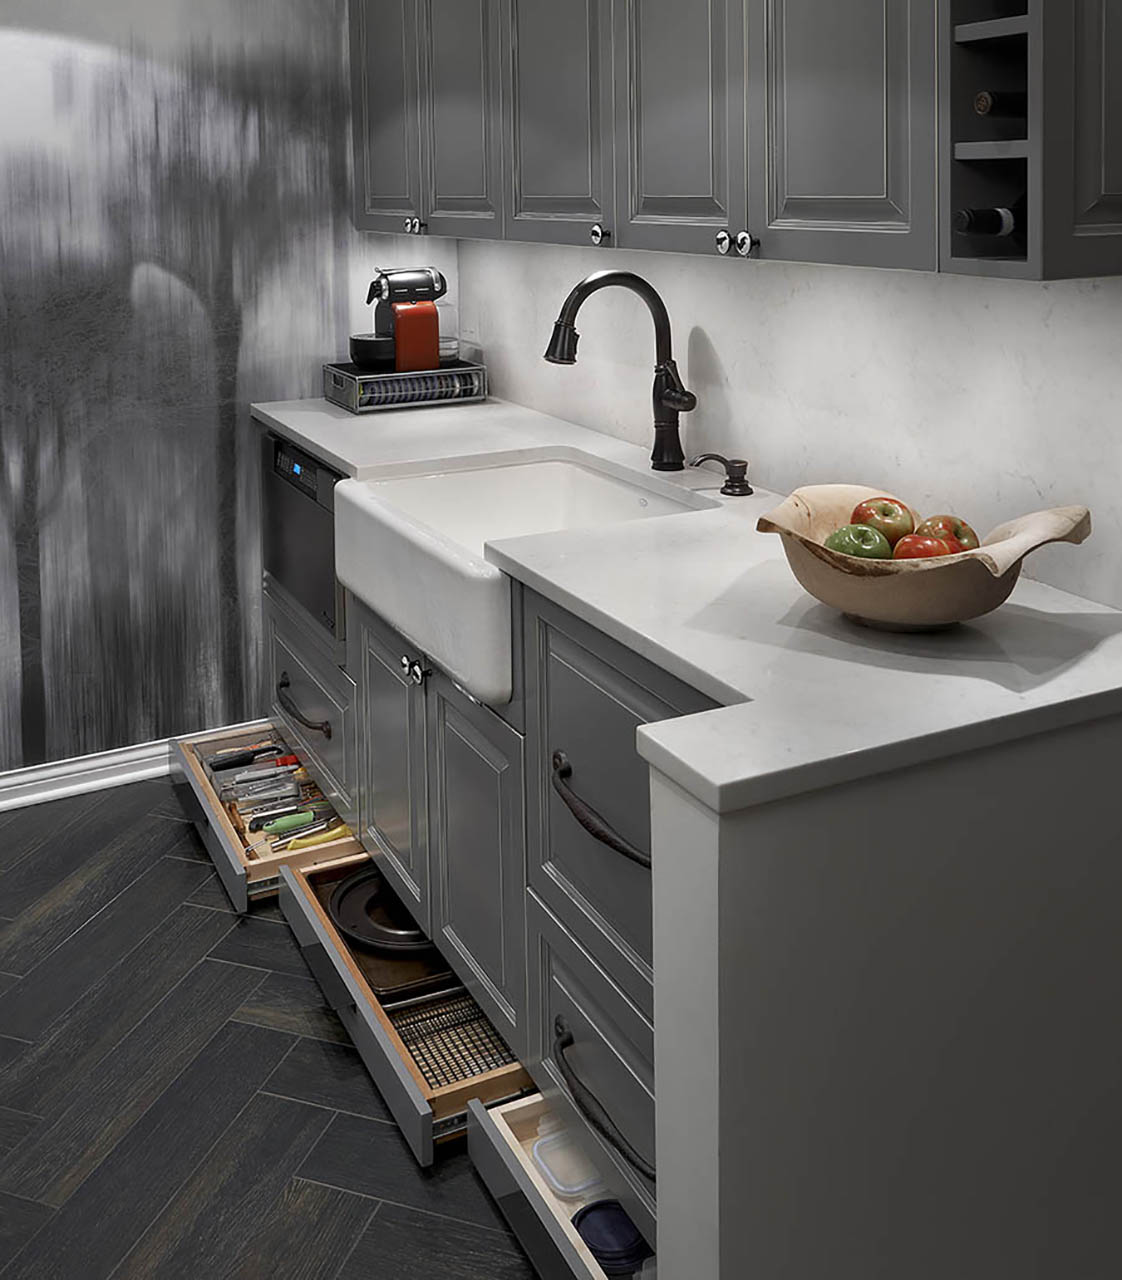 Stylish grey kitchen cabinet with modern sink design in Chicago